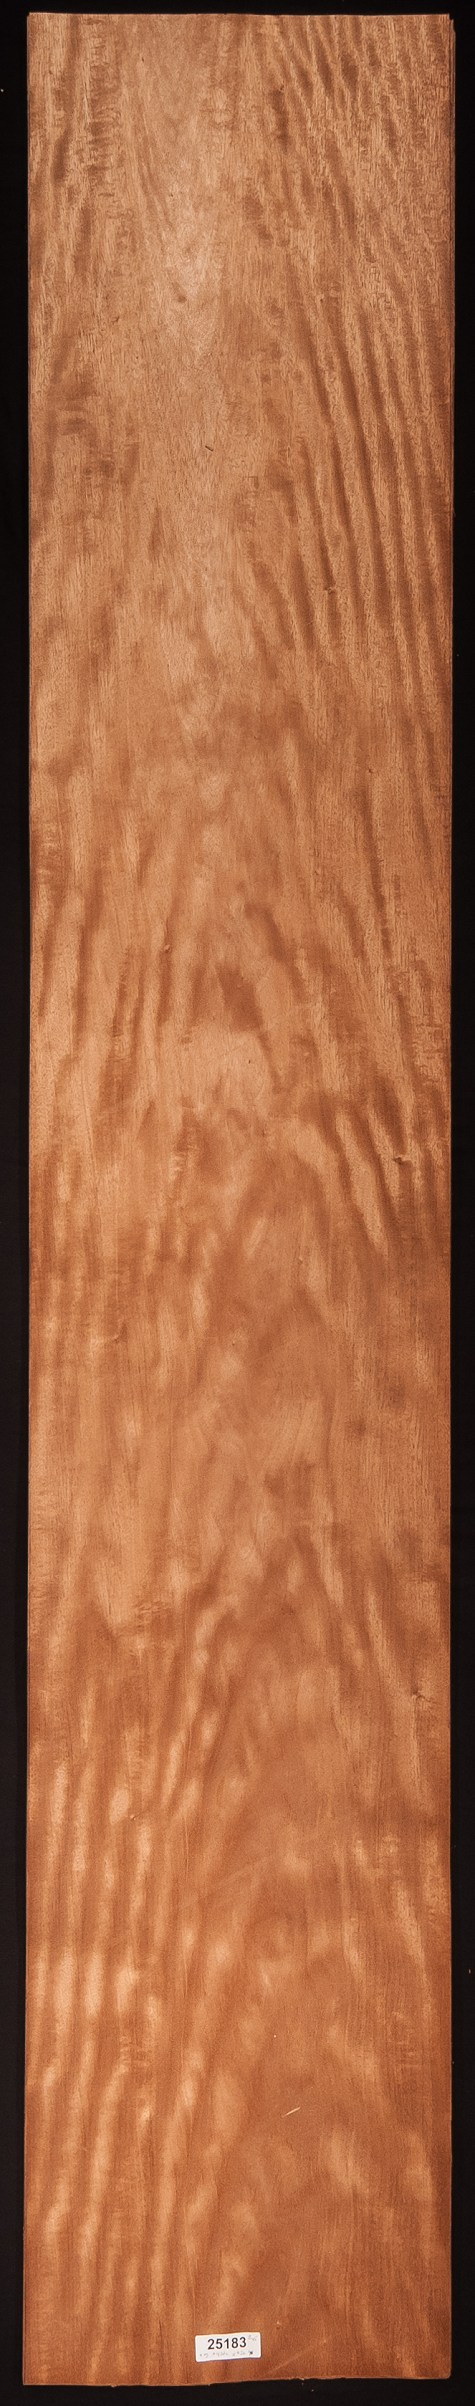 AAA Flat Cut/Figured Mahogany Veneer Sheet